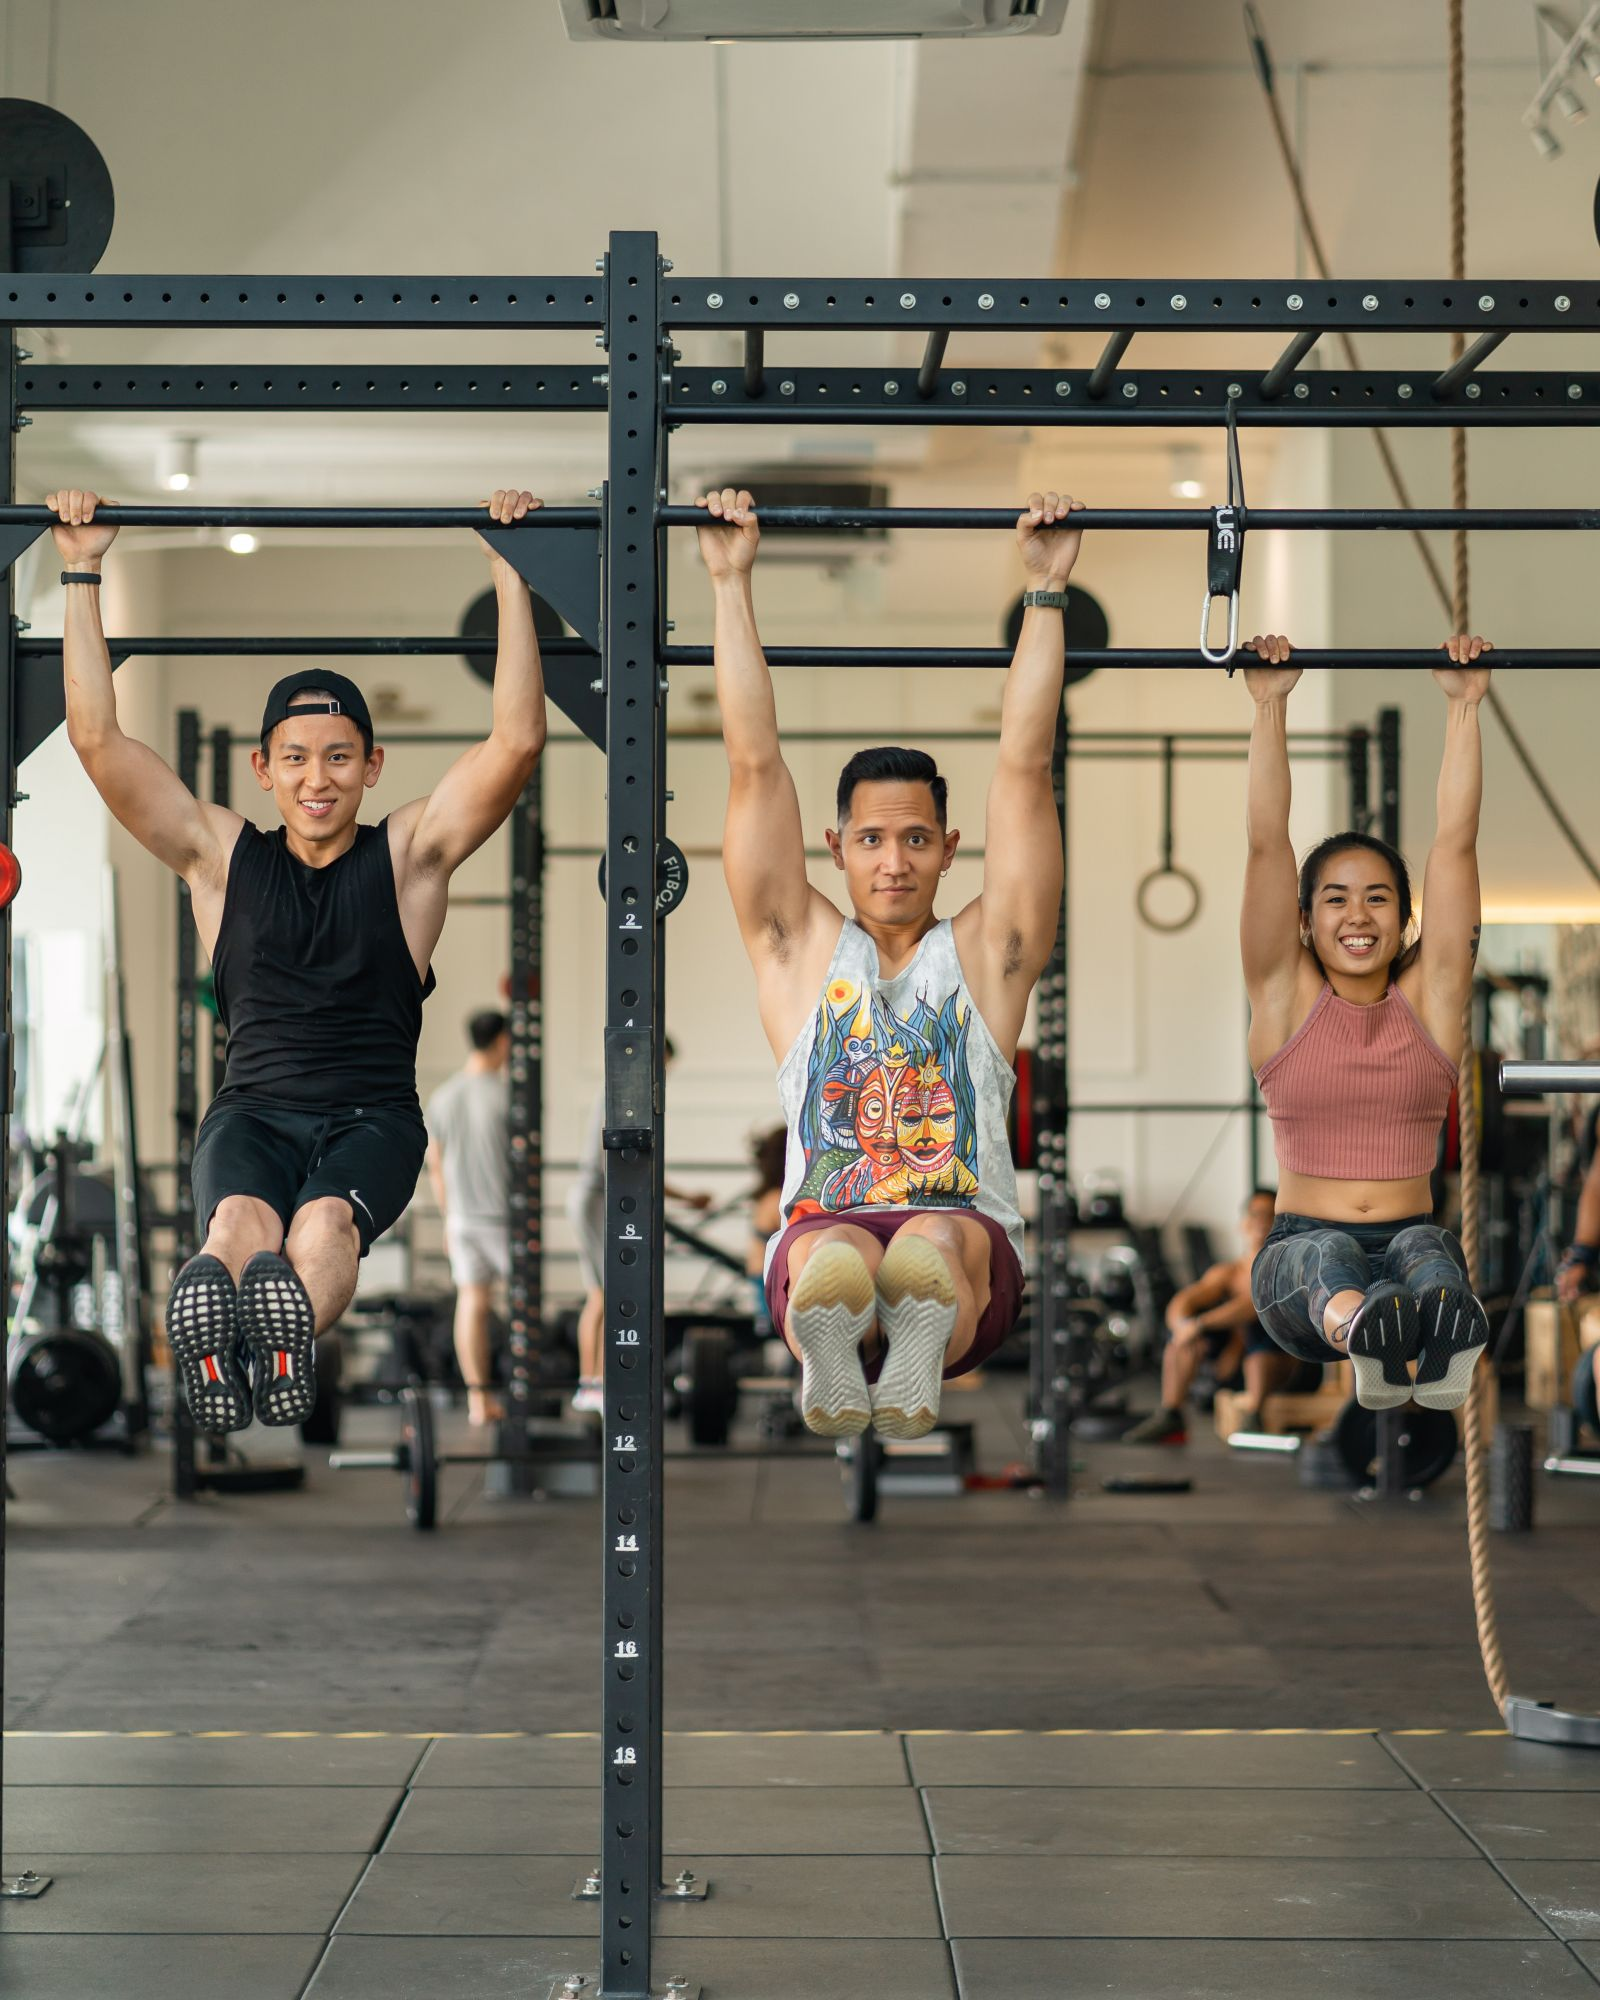 The Hottest Fitness Classes In Asia To Help You Shape Up In 2020